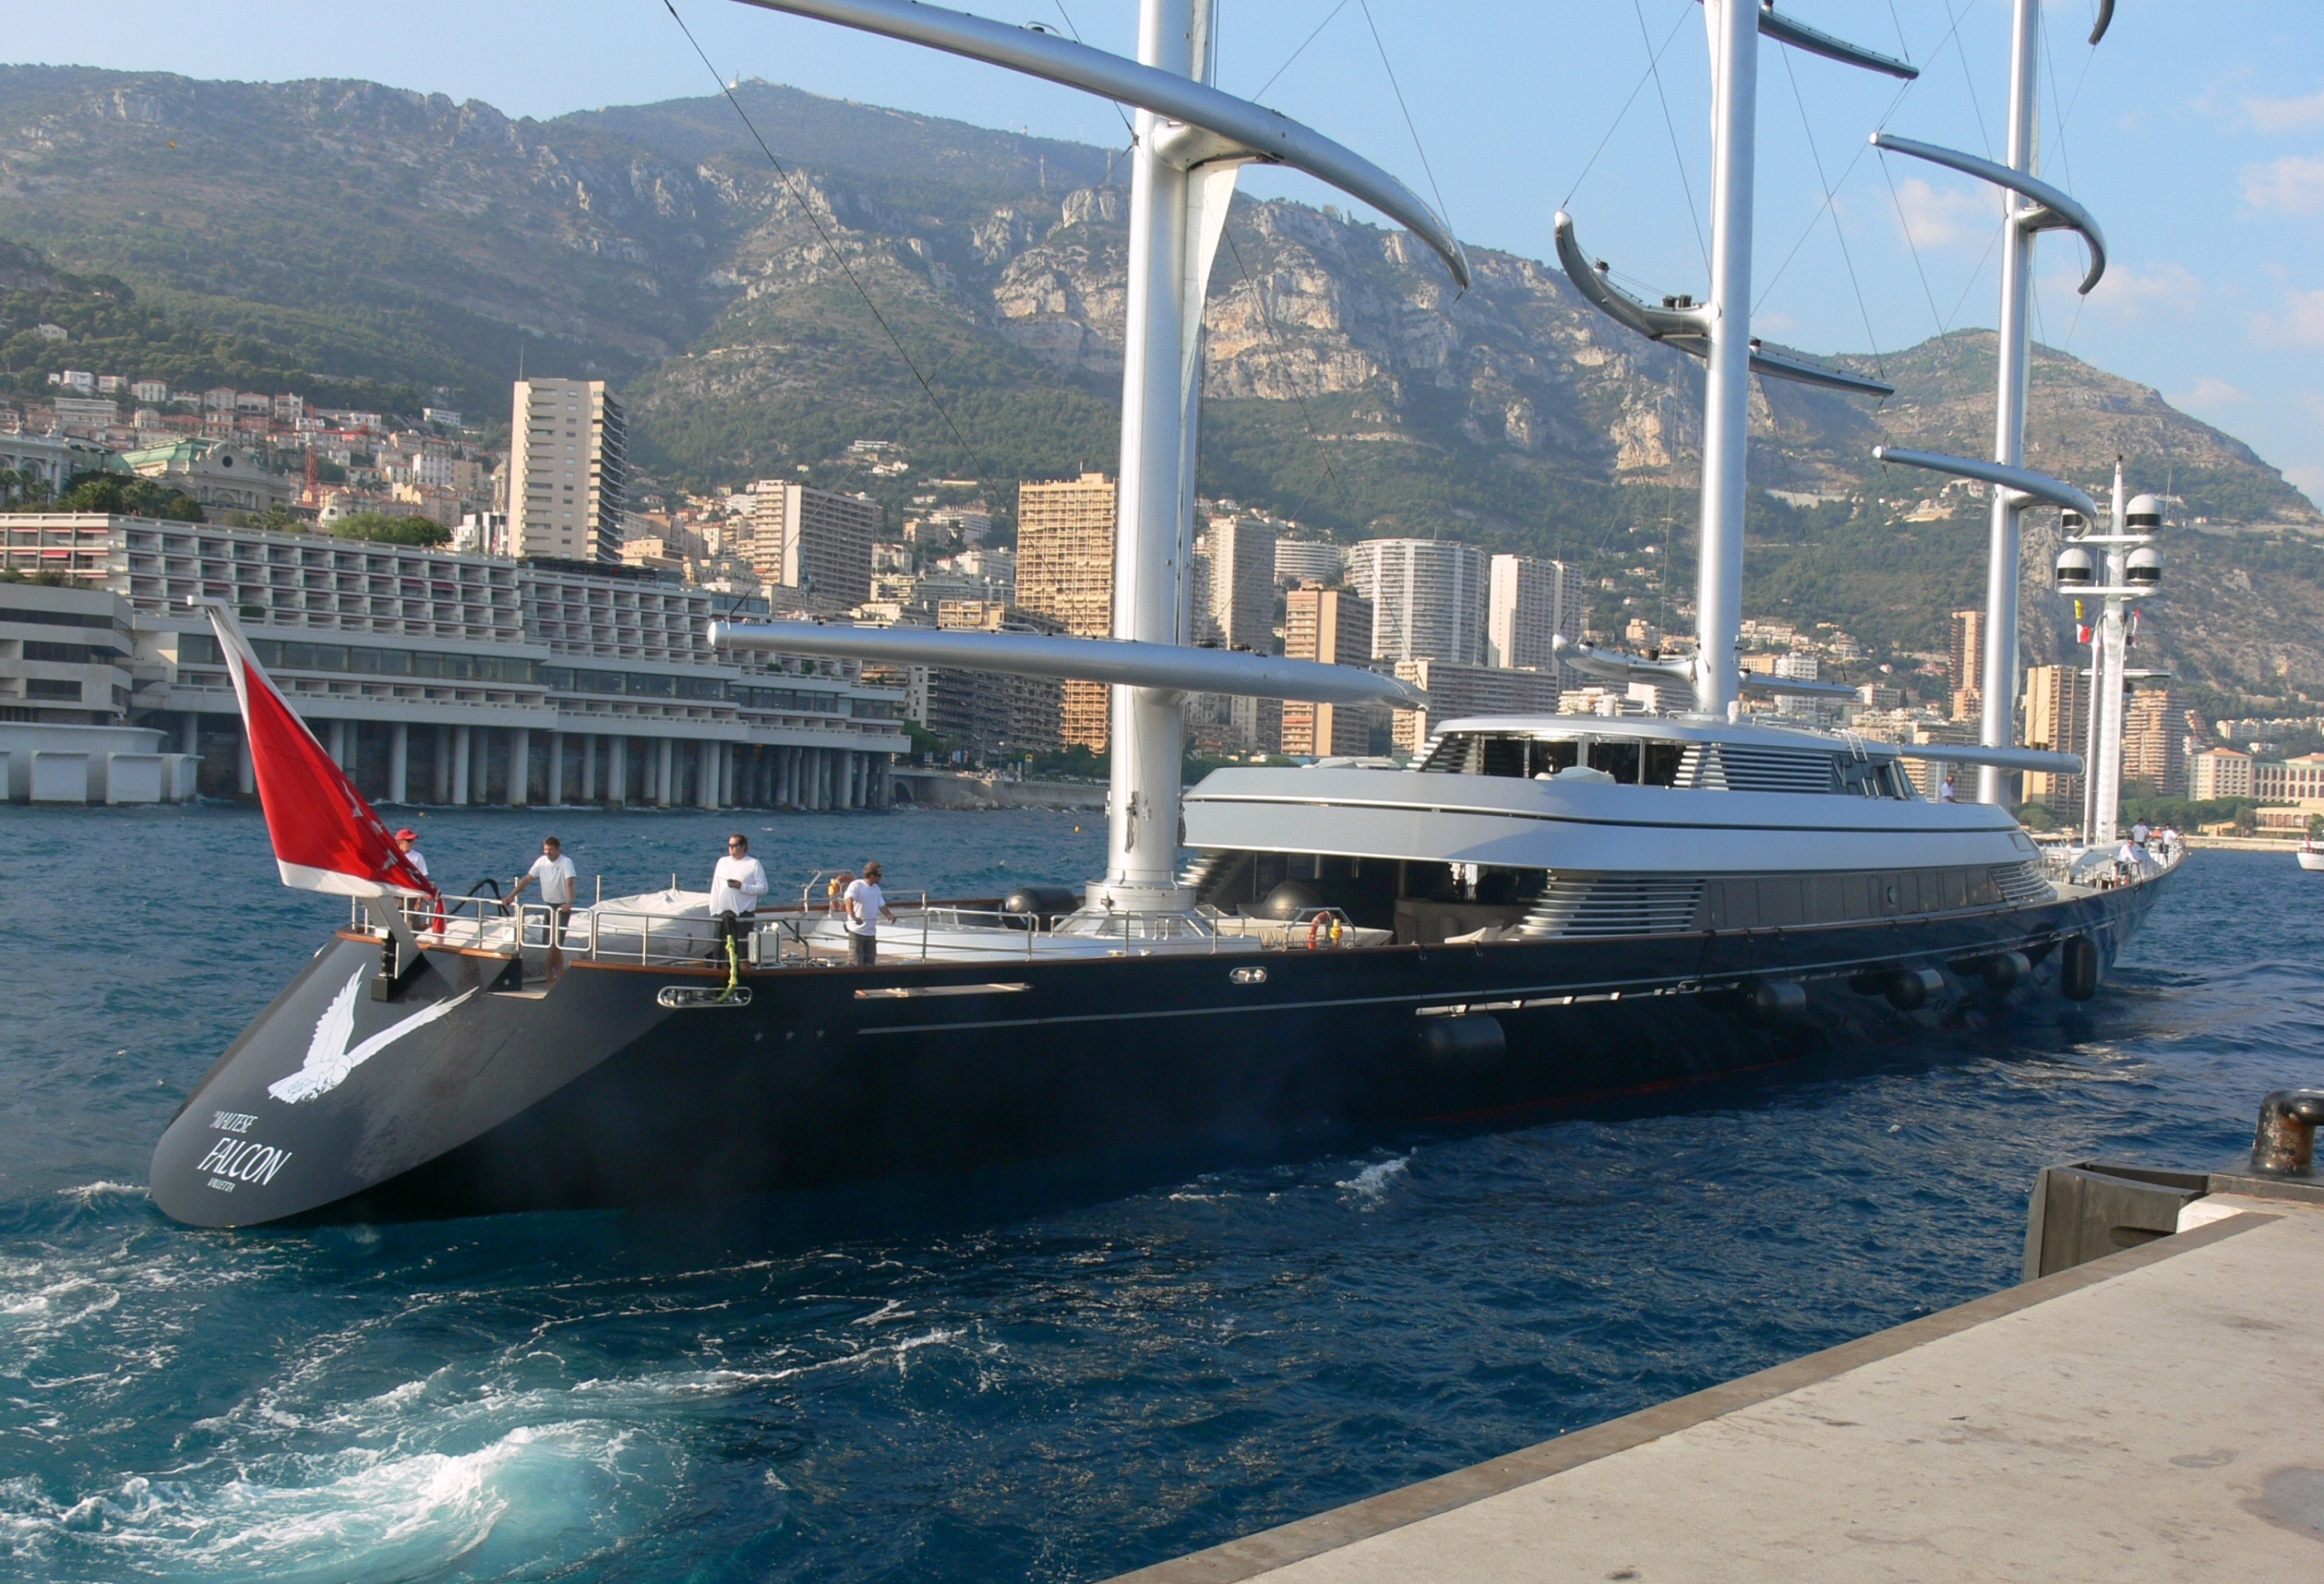 ... yacht: MALTESE FALCON seen here arriving in Monaco for the Yacht Show